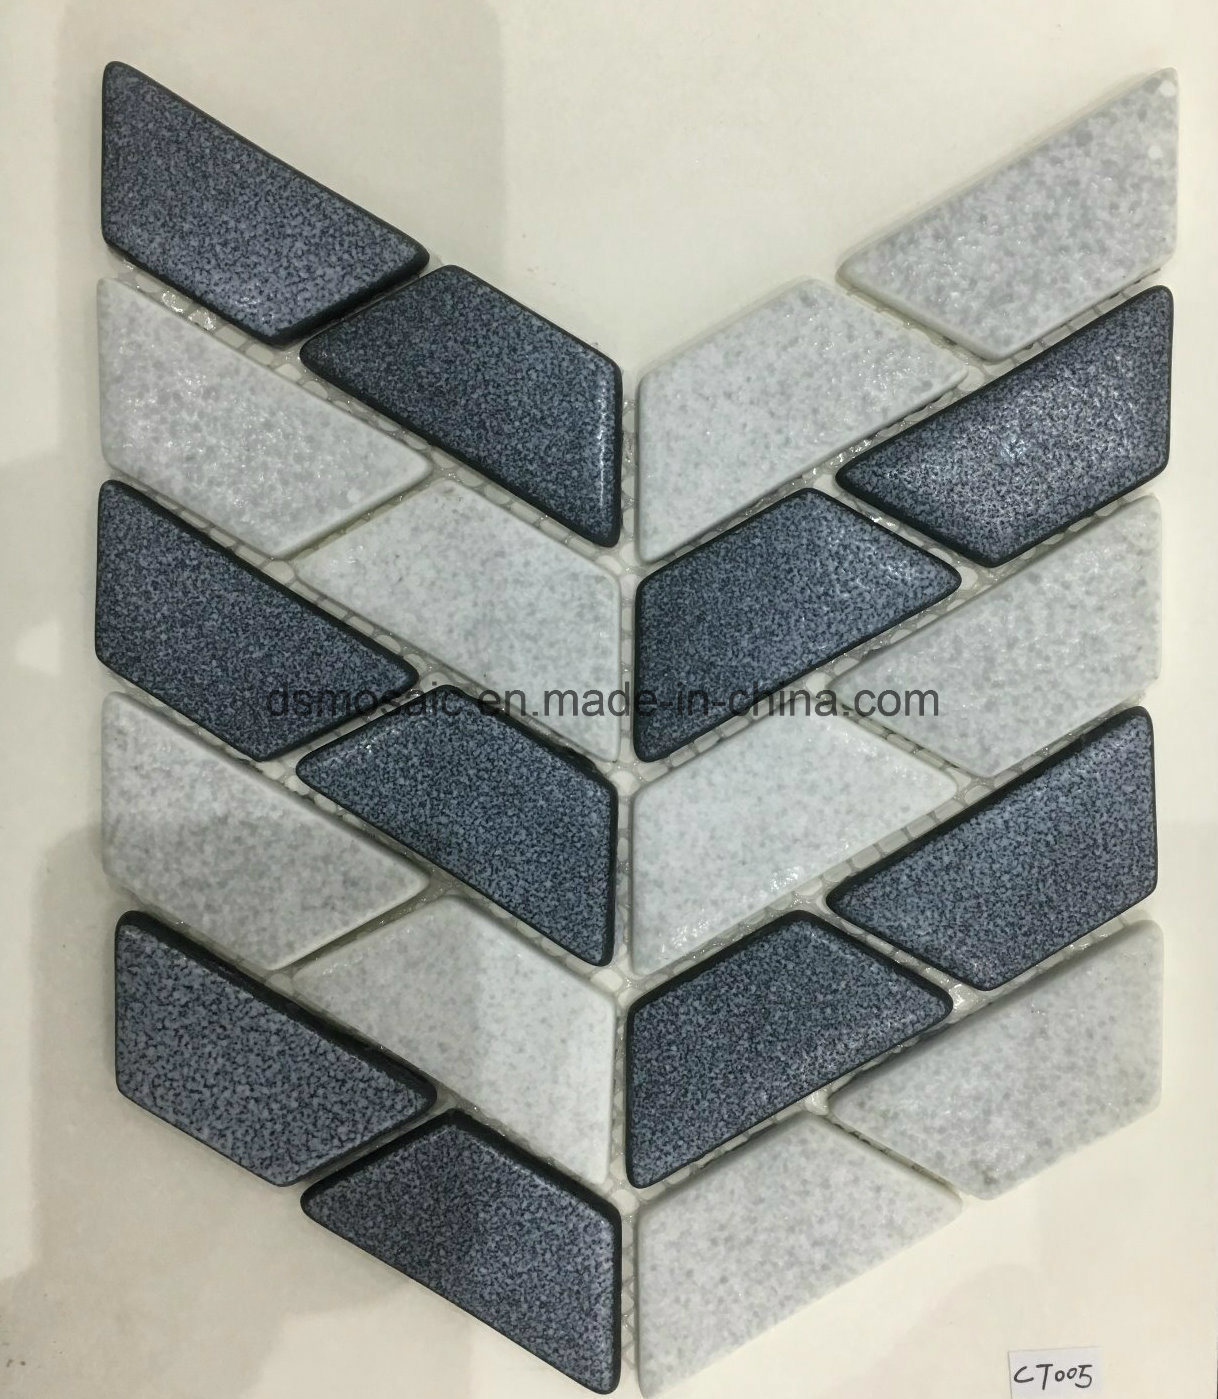 Newest Technology Ink Jet Printing Strip Glass Mosaic Tile